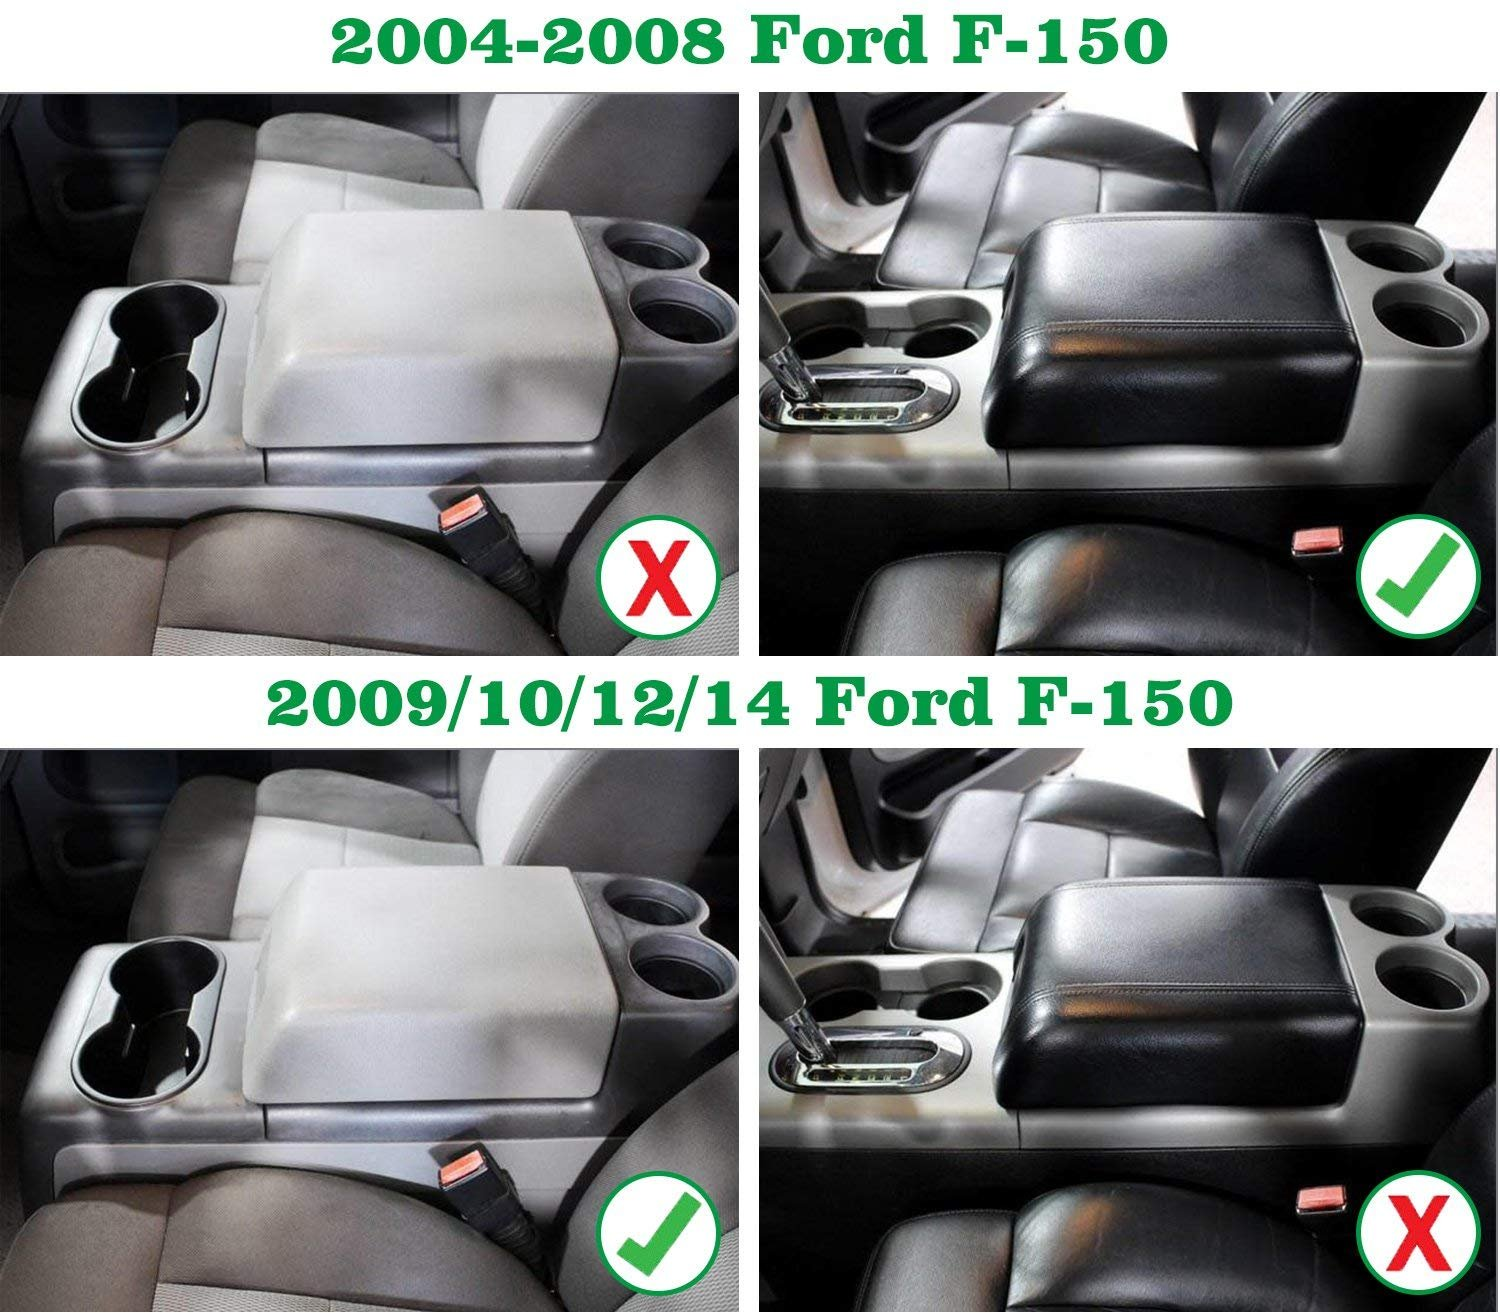 Winunite 2004 2014 1 Set Ford F 150 Front Center Stx Console Cup Holder Insert Rubber Replacement Fit 2008 With Flow Through